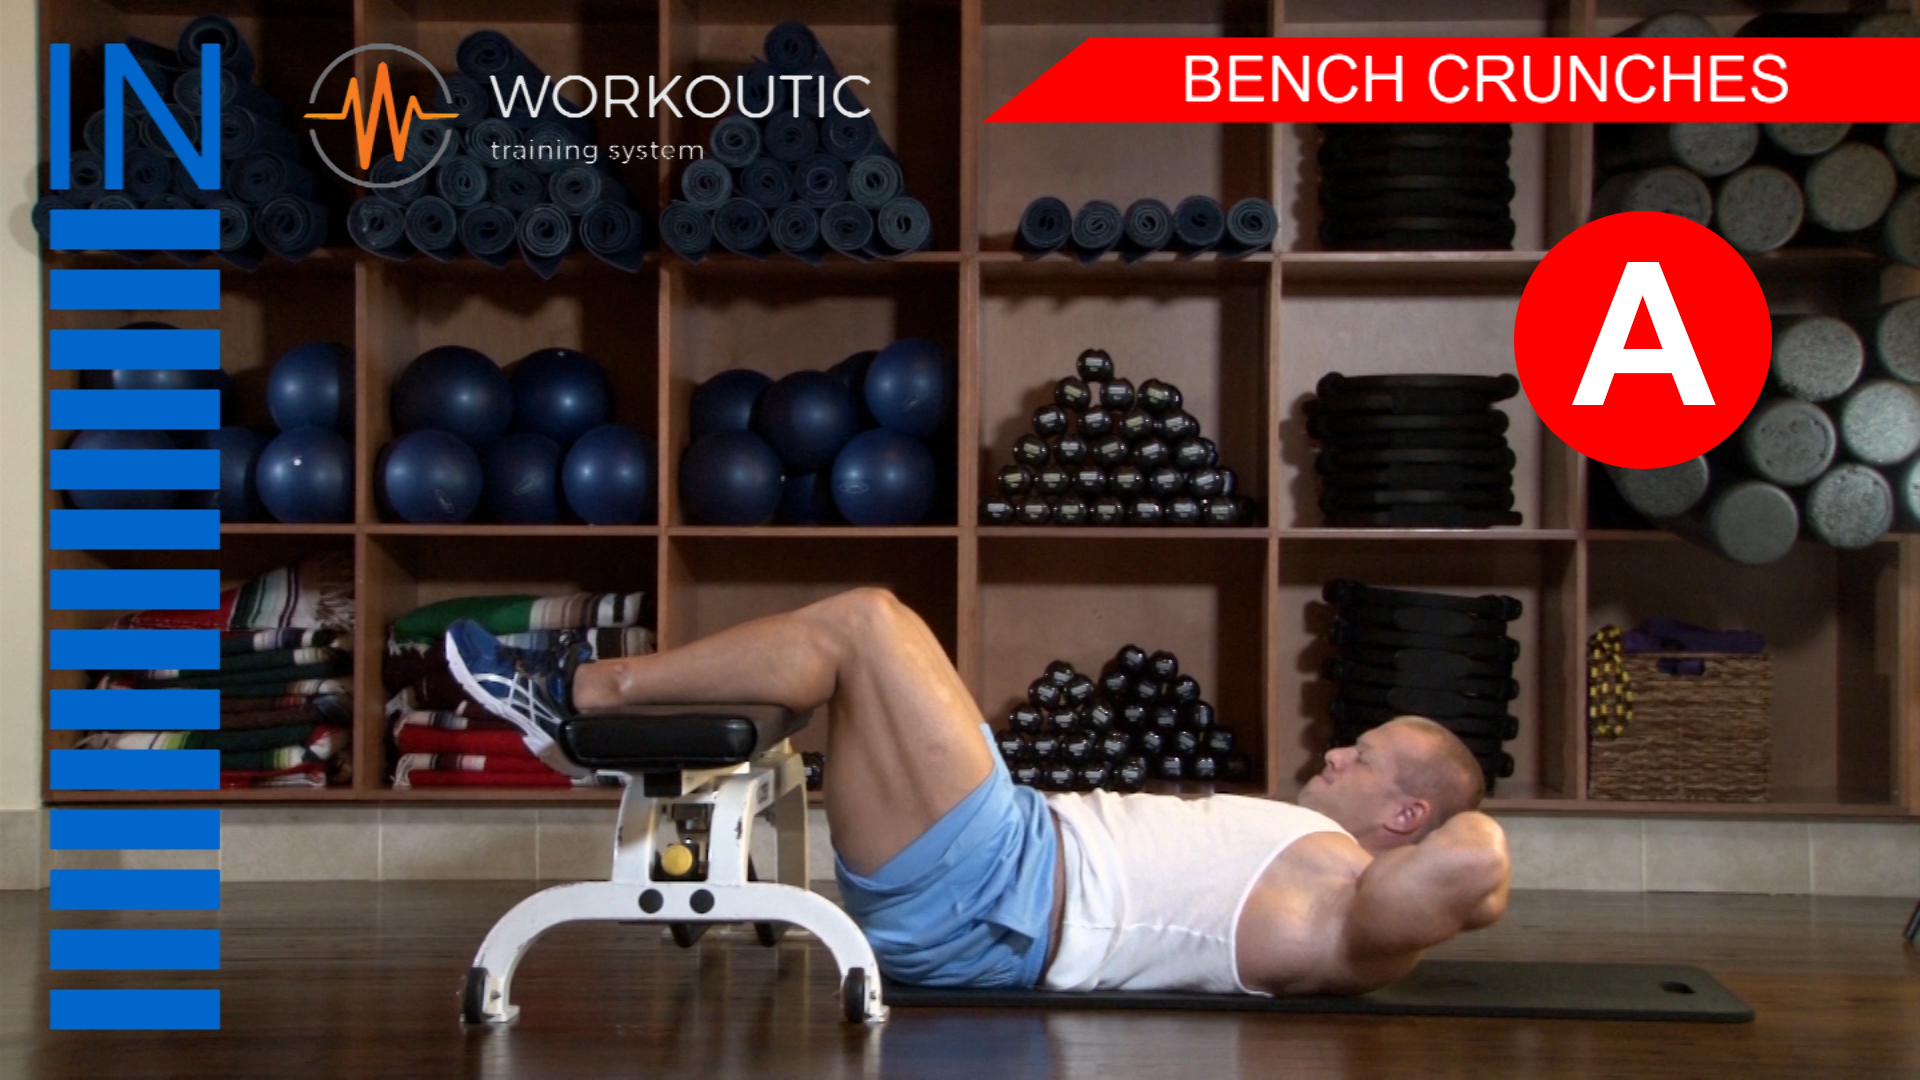 Abs Exercises - Workutic - 6 pack special - Bench Crunches Inhale